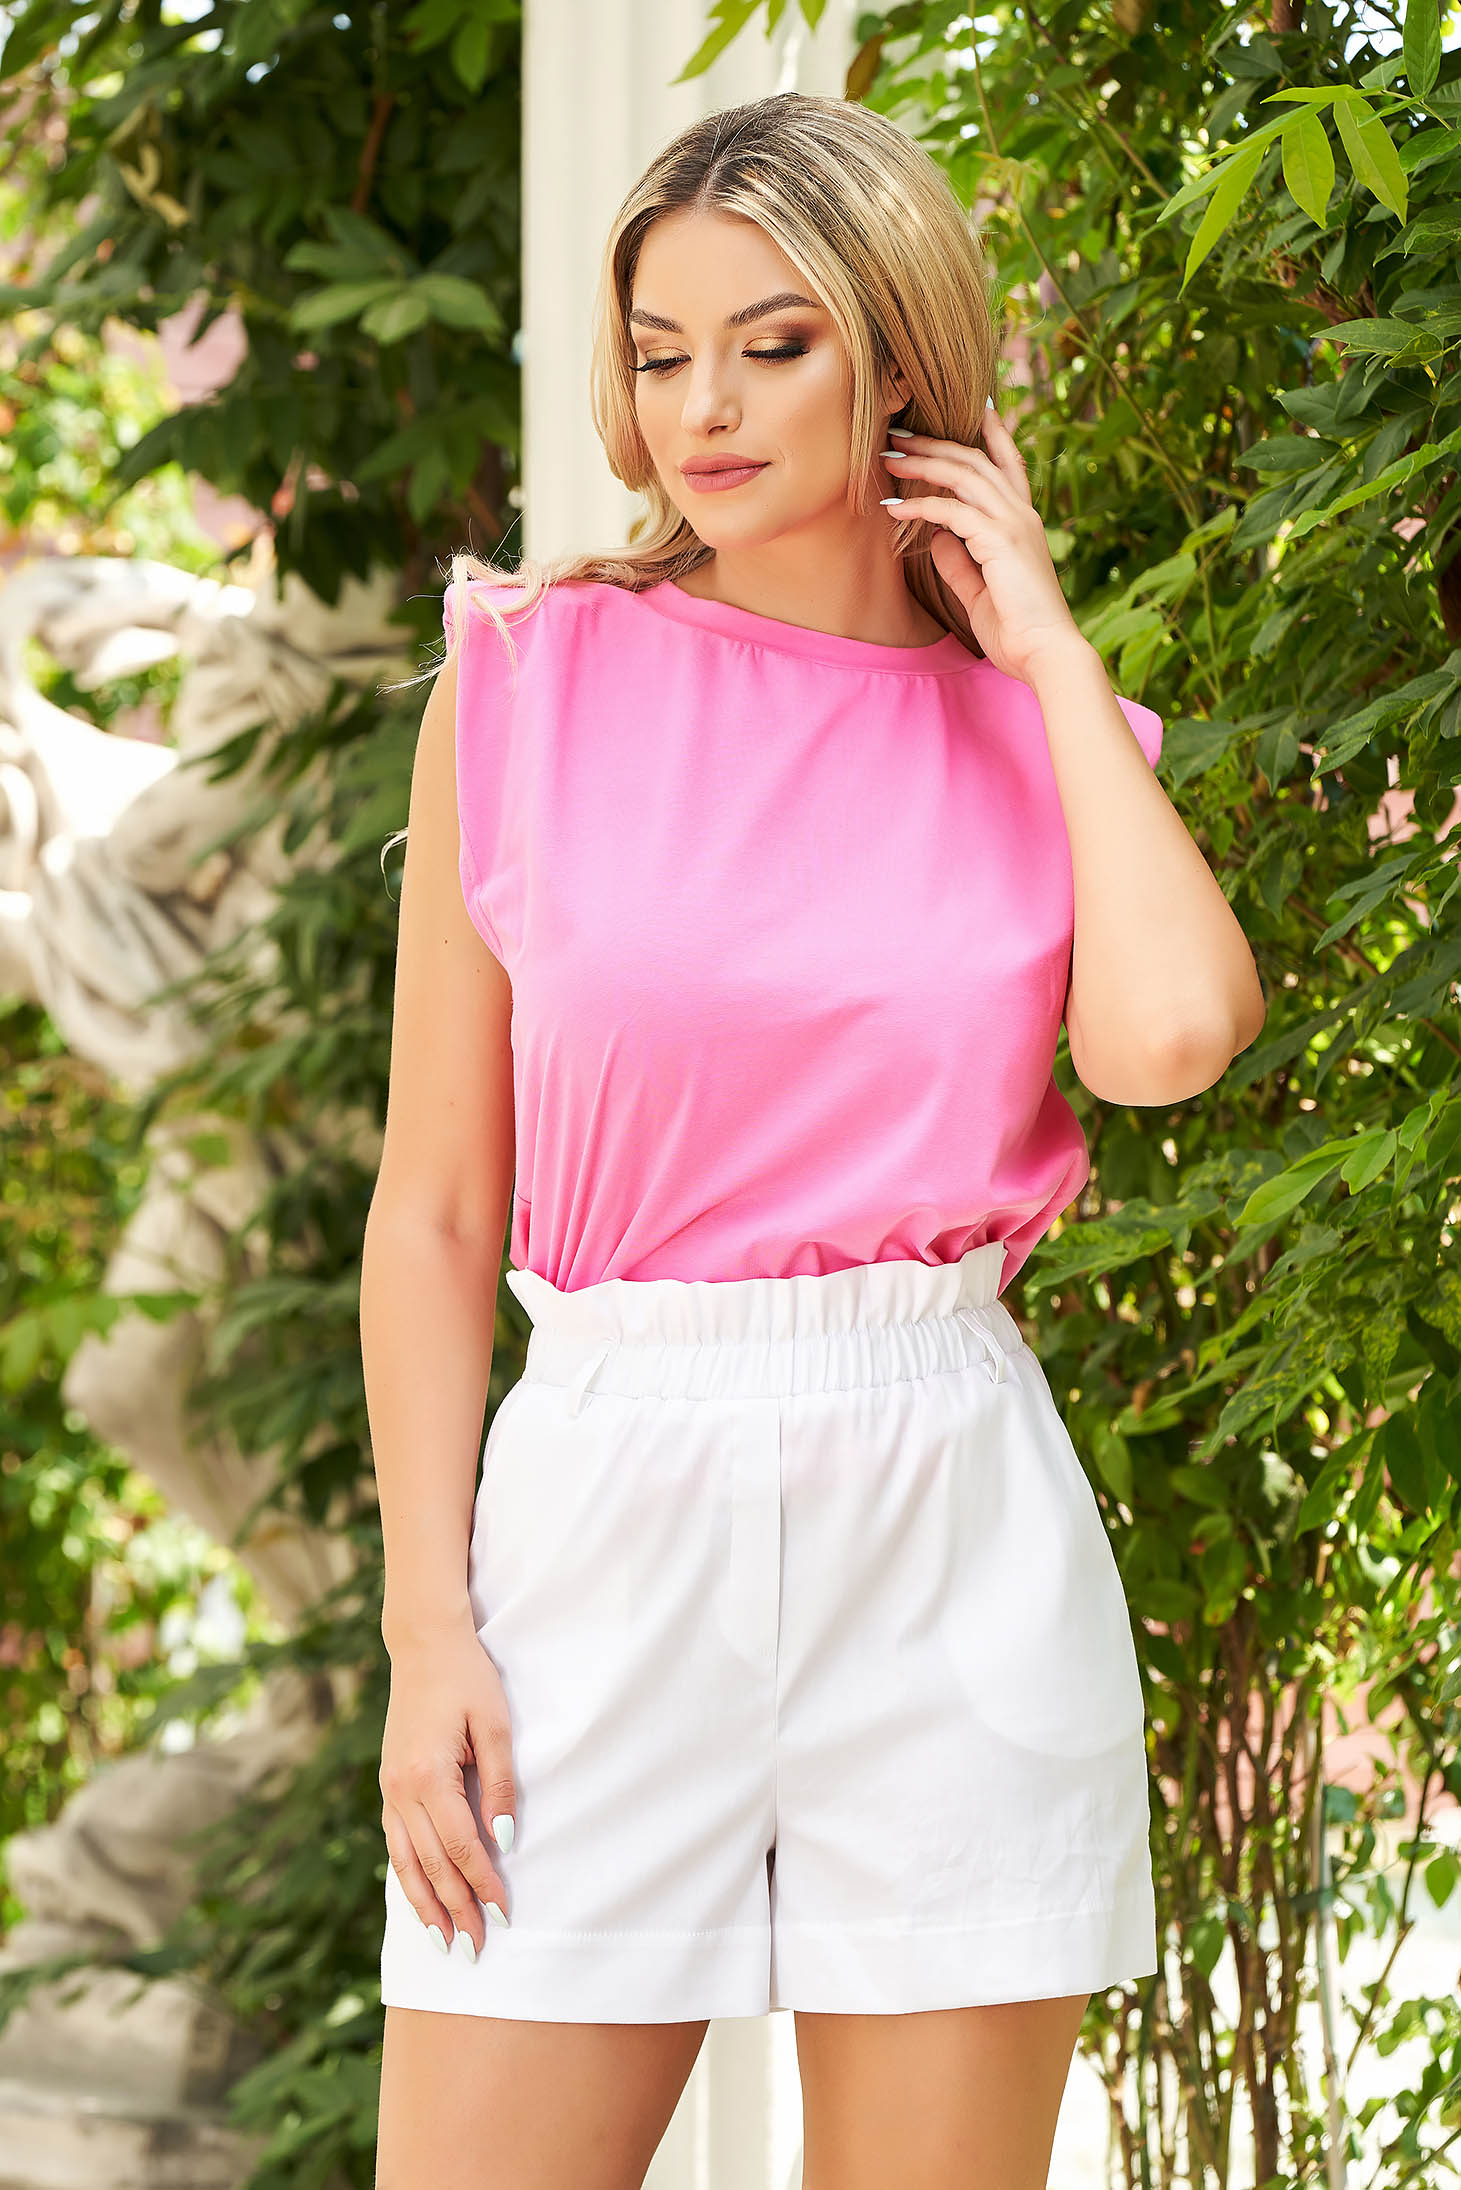 Pink top shirt with easy cut with padded shoulders thin fabric